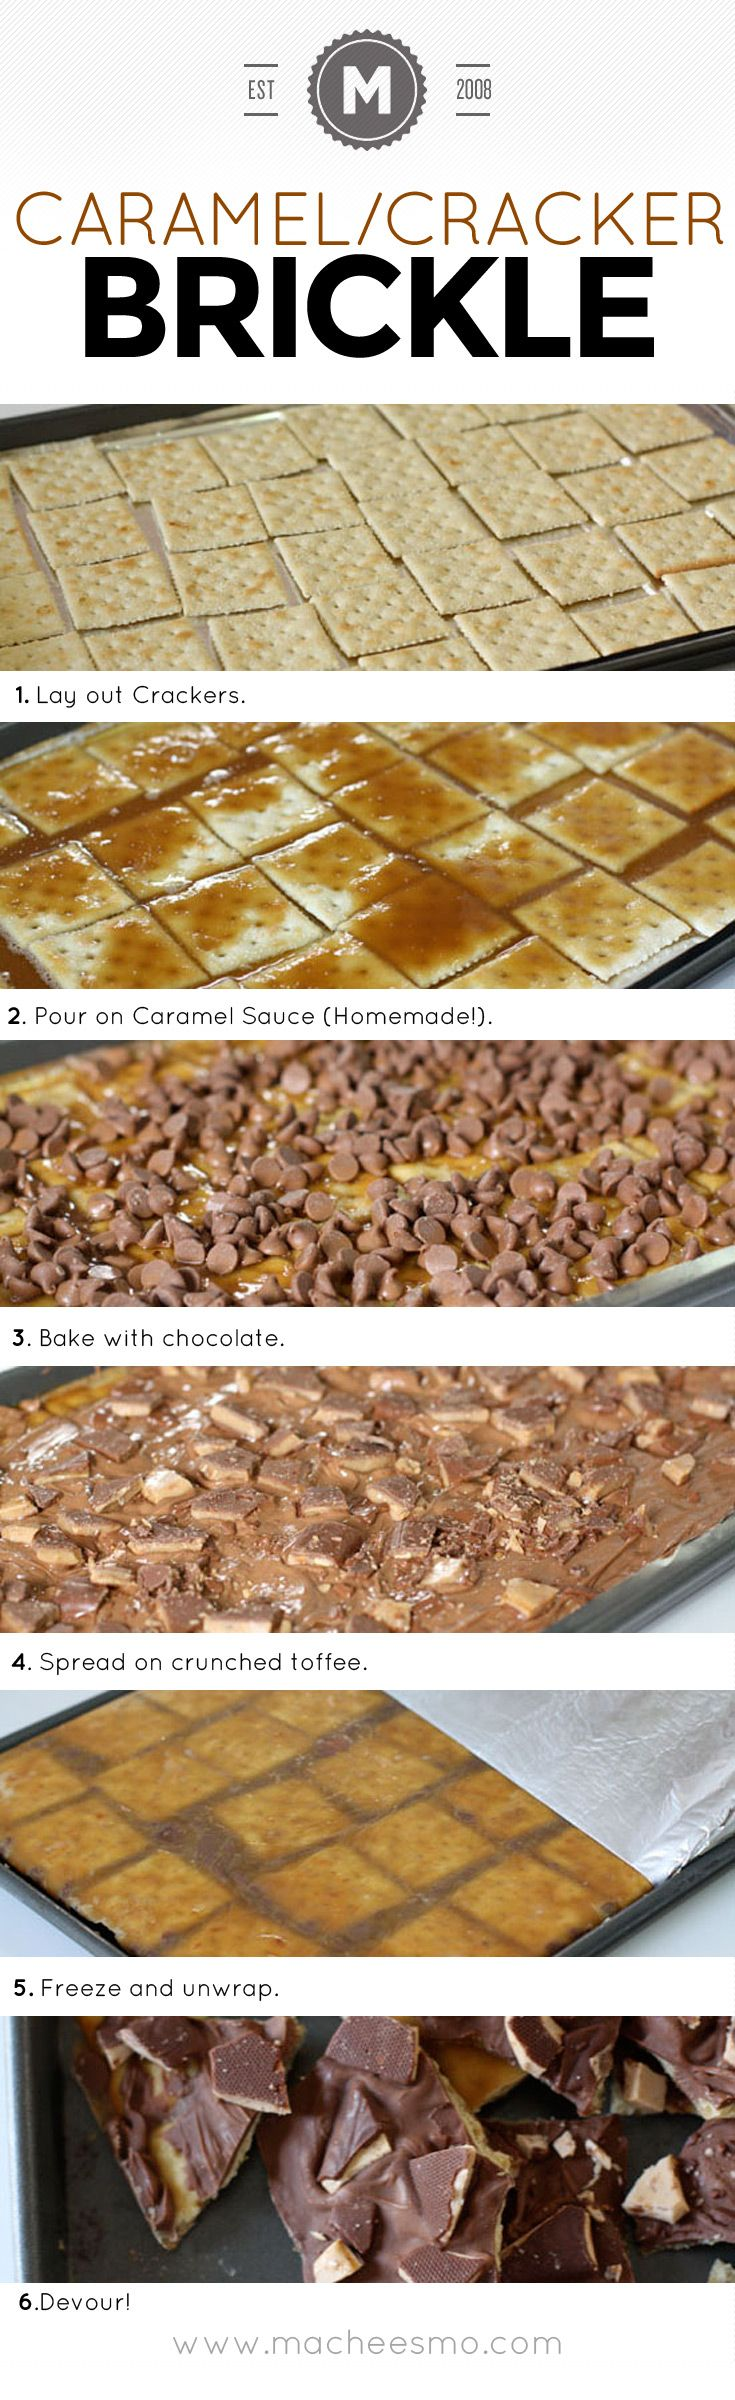 Brickle recipe homemade with caramel sauce, chocolate, and a secret ingredient.